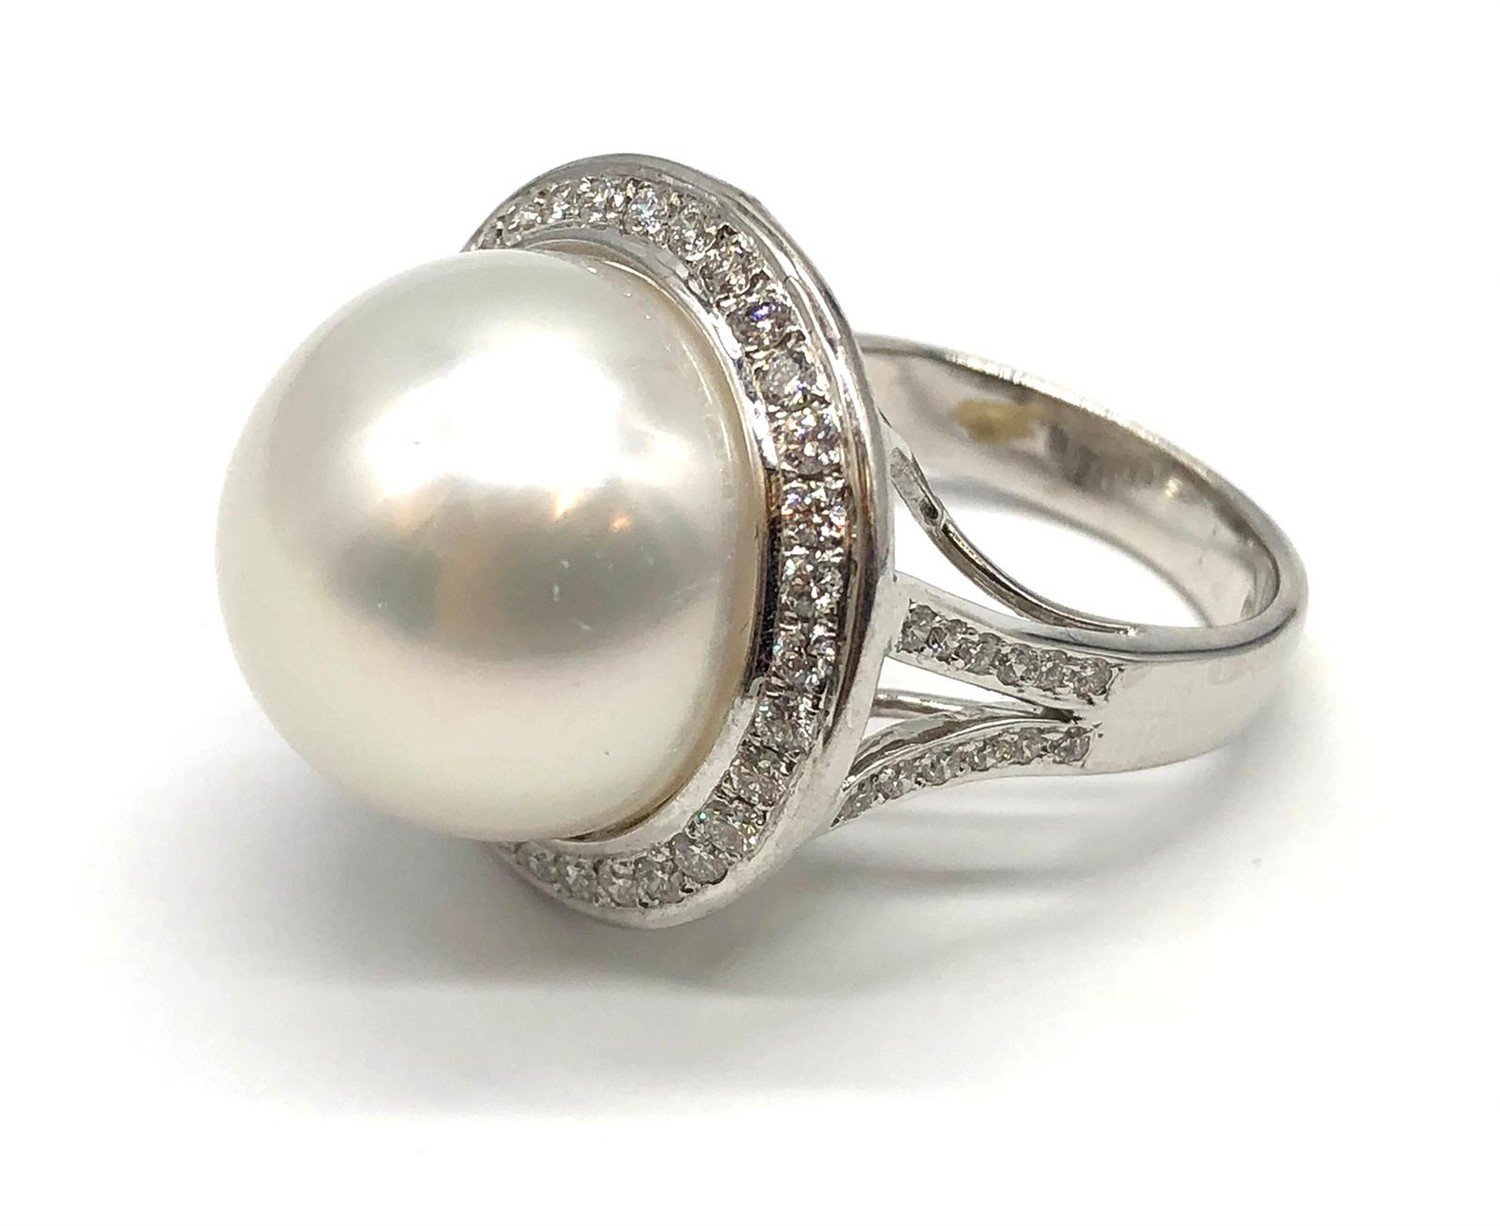 A large Kimoto pearl (17mm diameter) ring set in diamond and 18ct white gold ring, weight 14.43g and